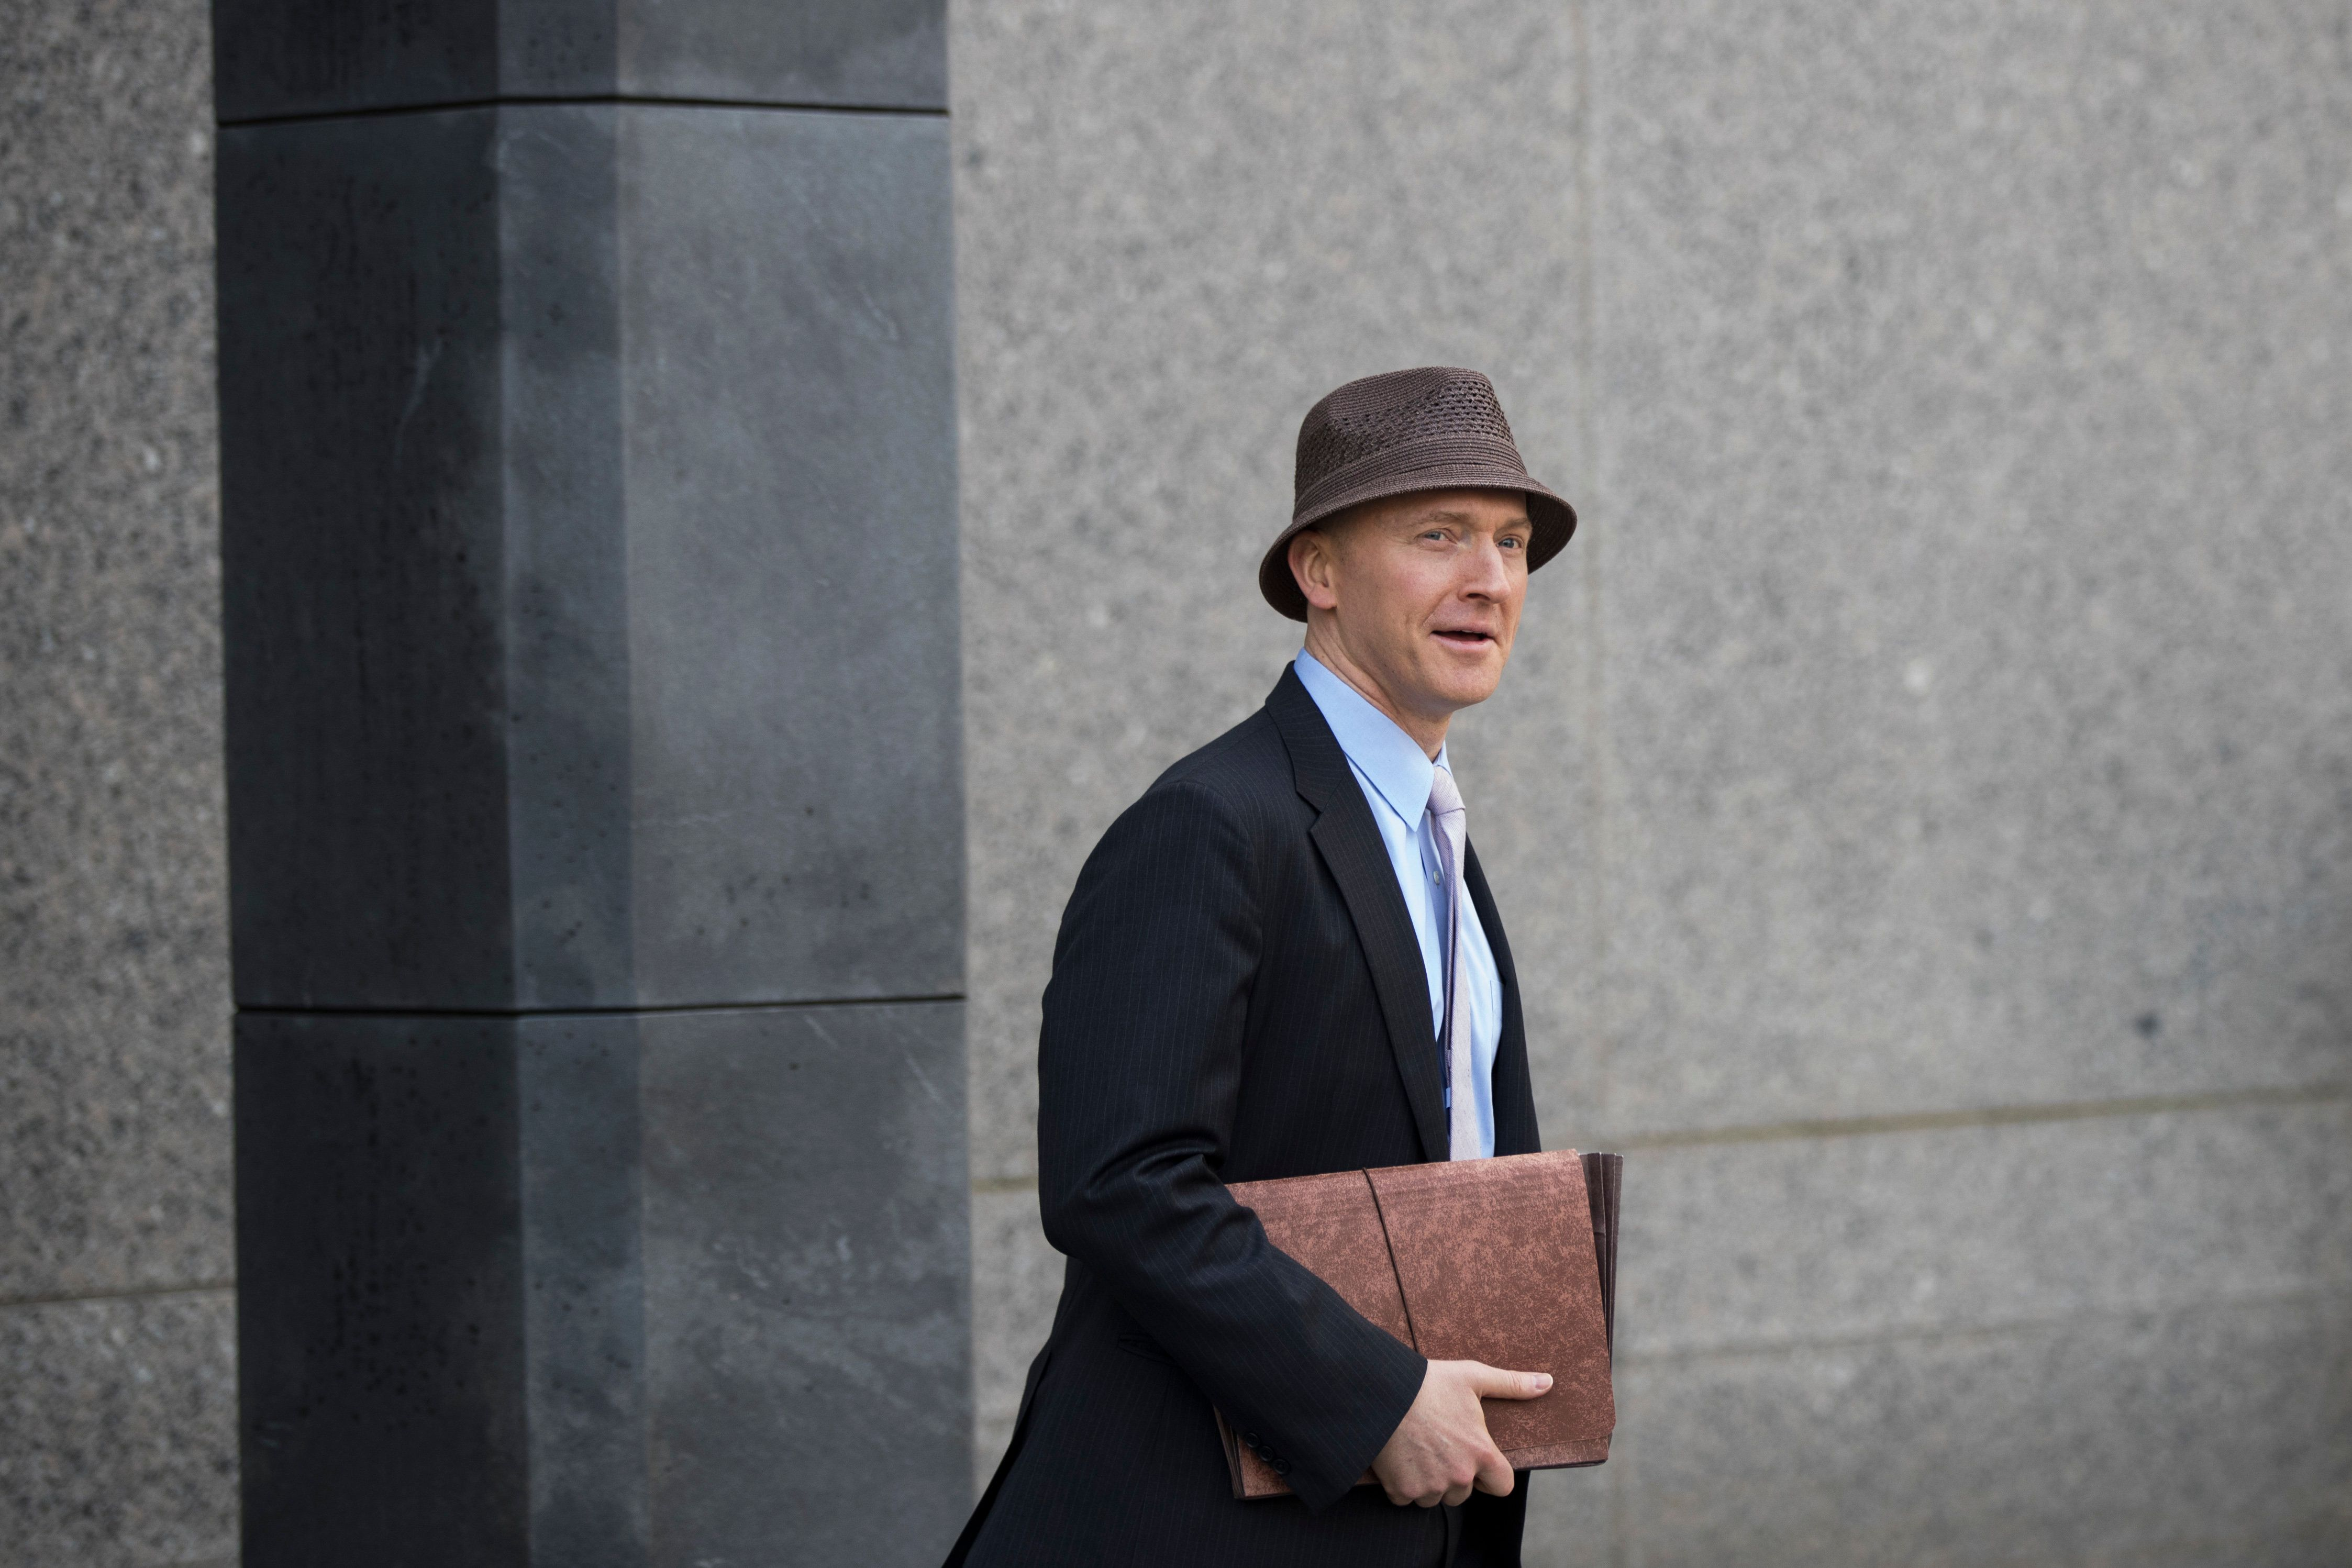 NEW YORK, NY - APRIL 16: Carter Page arrives at the courthouse on the same day as a hearing regarding Michael Cohen, longtime personal lawyer and confidante for President Donald Trump, at the United States District Court Southern District of New York, April 16, 2018 in New York City.  Cohen and lawyers representing President Trump are asking the court to block Justice Department officials from reading documents and materials related to Cohen's relationship with President Trump that they believe should be protected by attorney-client privilege. Officials with the FBI, armed with a search warrant, raided Cohen's office and two private residences last week.  (Photo by Drew Angerer/Getty Images)